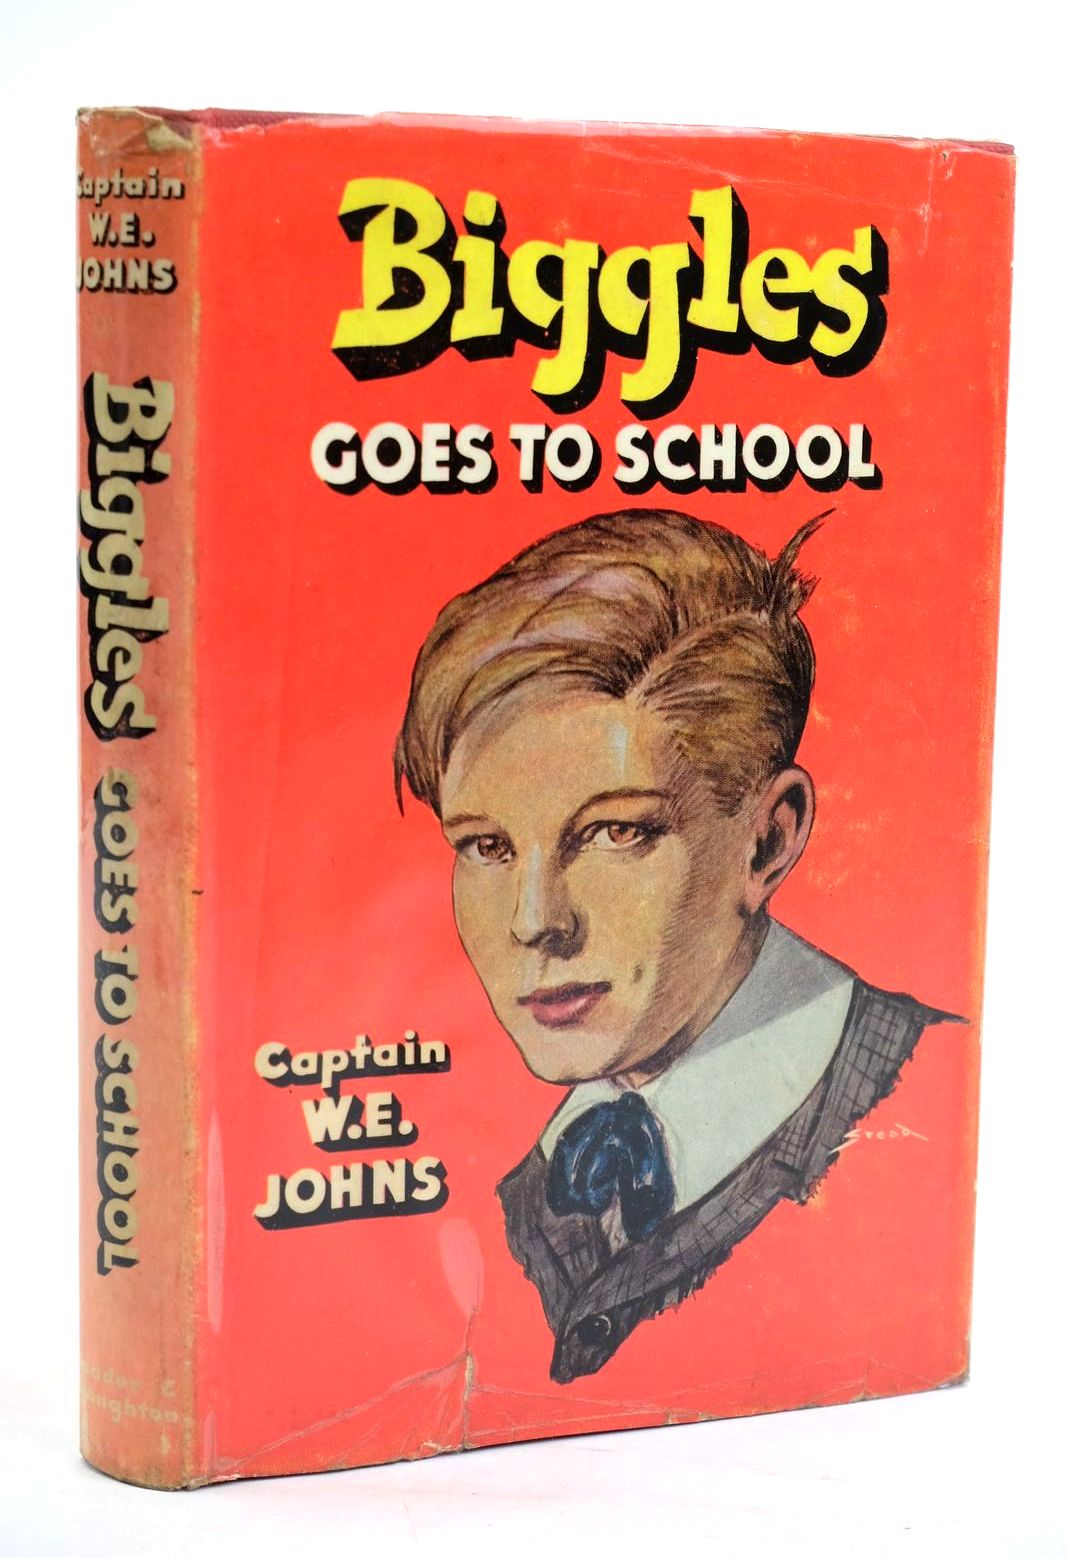 Photo of BIGGLES GOES TO SCHOOL written by Johns, W.E. illustrated by Stead,  published by Hodder & Stoughton (STOCK CODE: 1319740)  for sale by Stella & Rose's Books